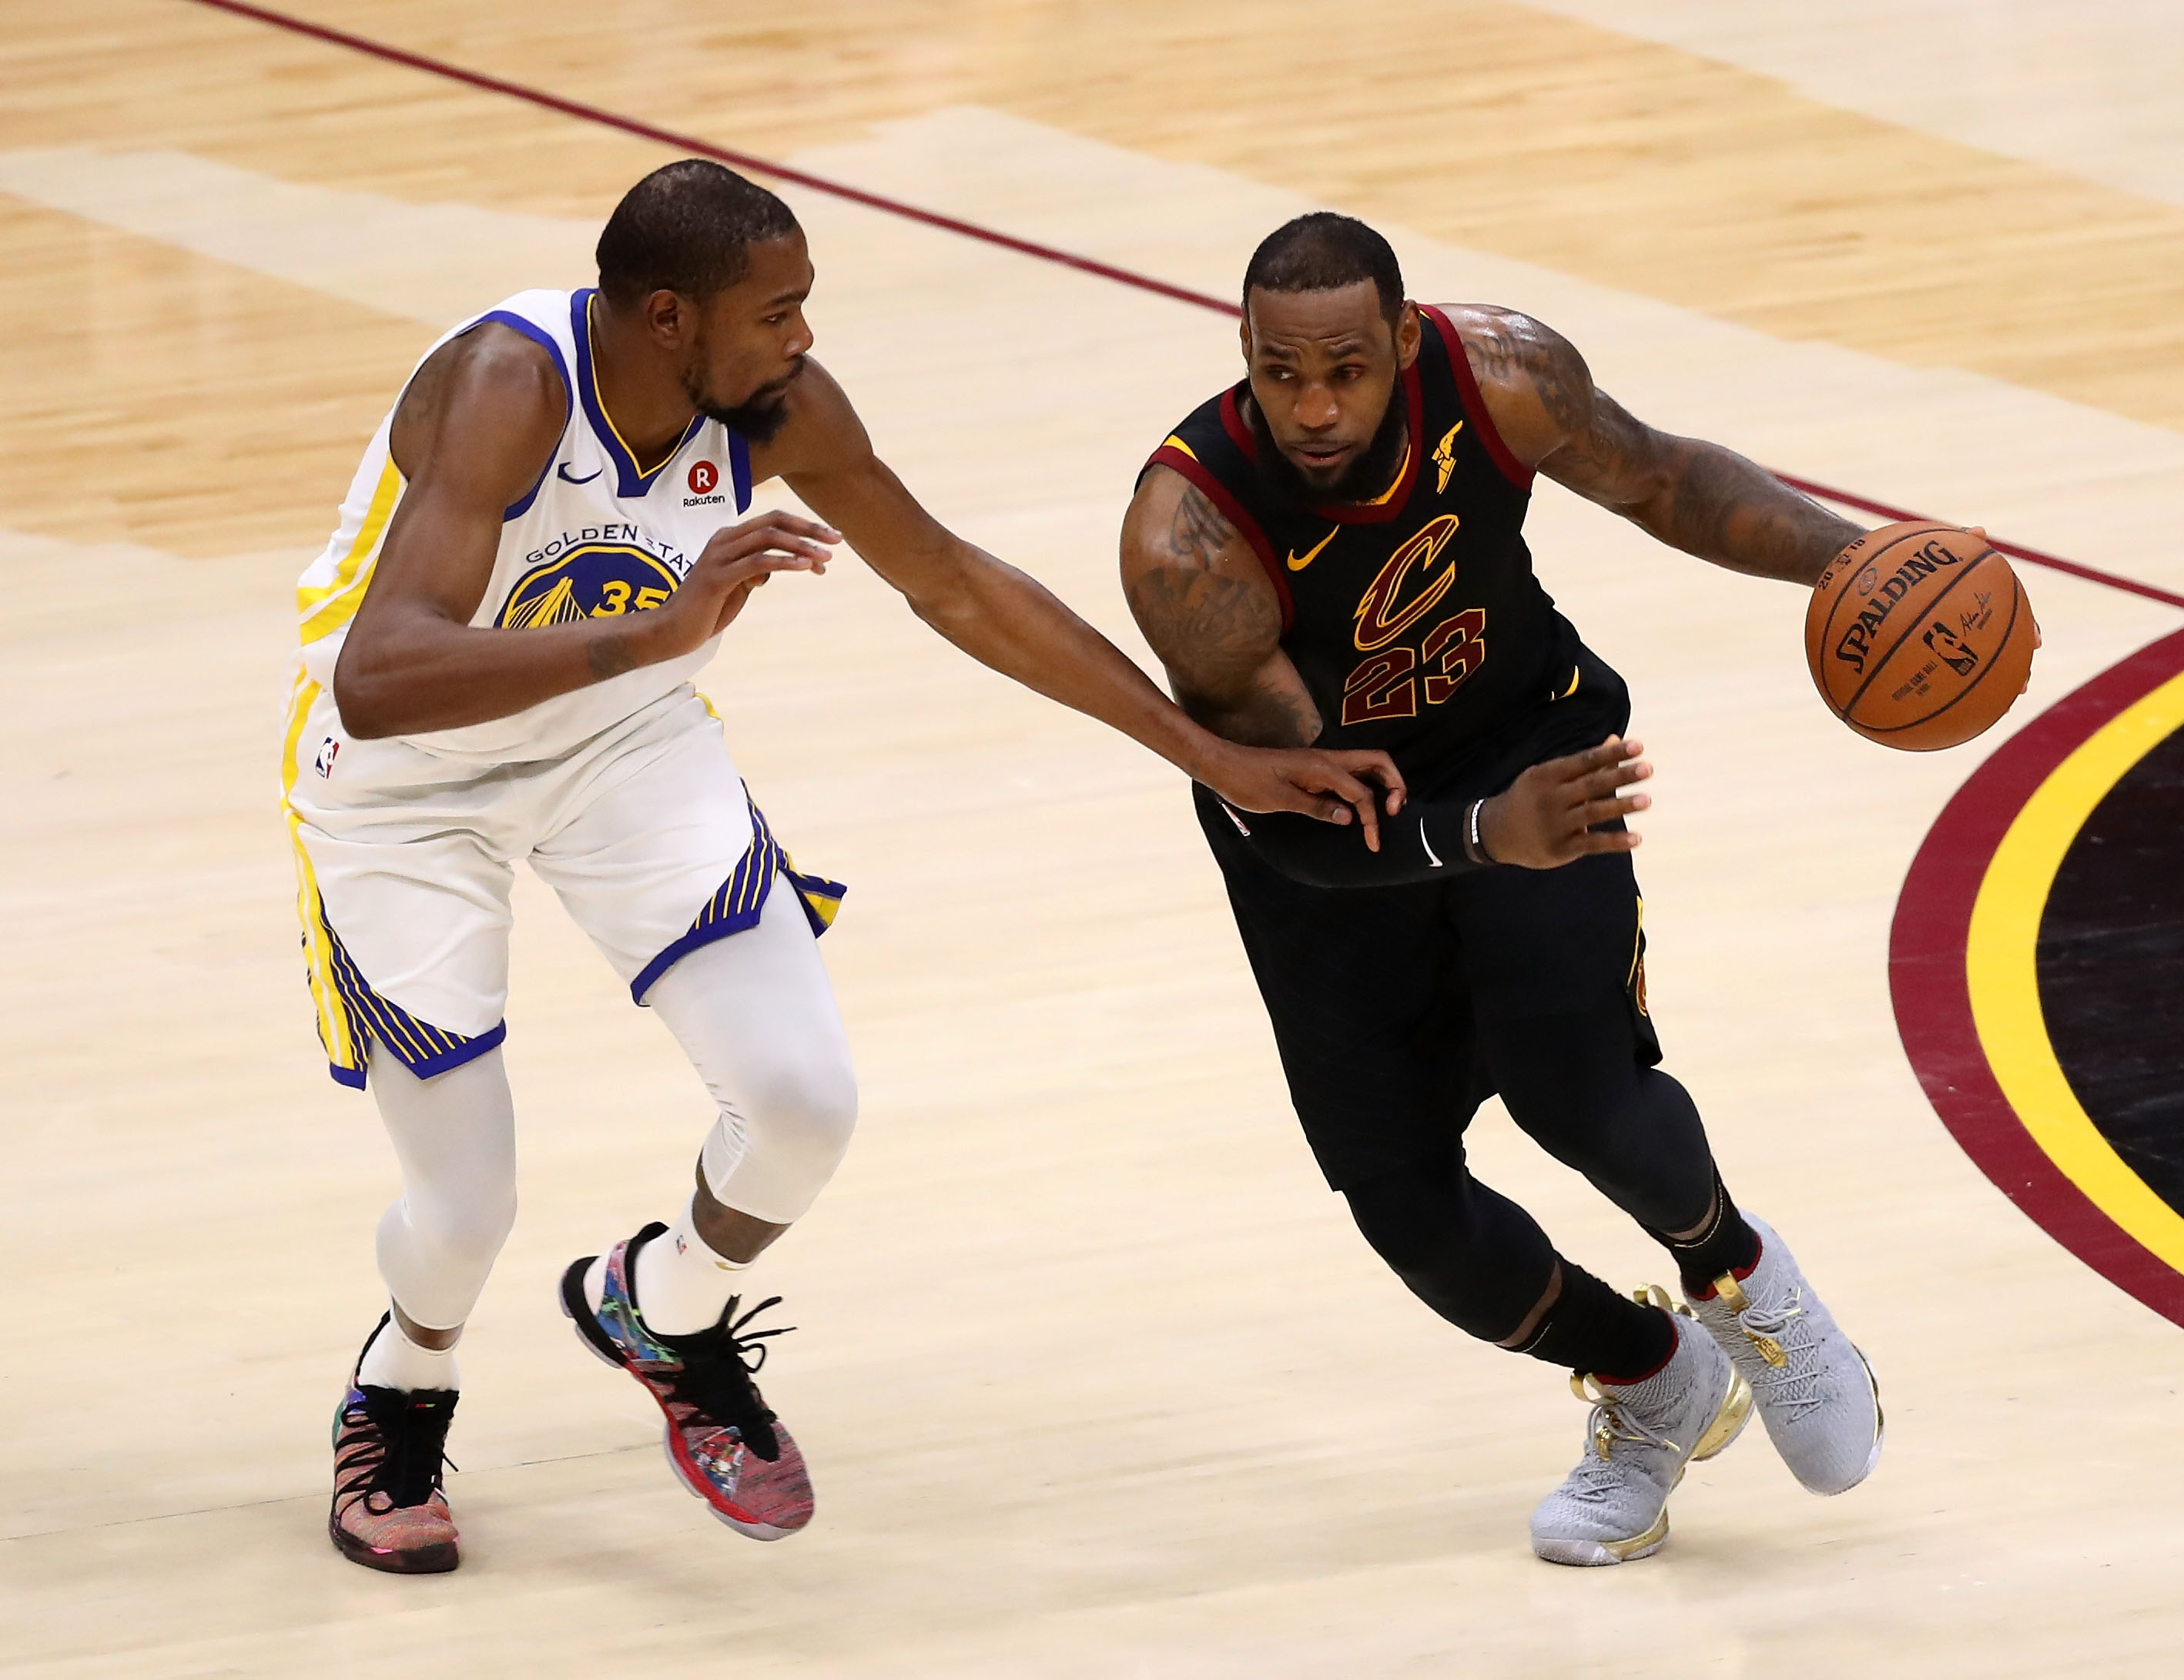 LeBron James punched white board, played NBA Finals with injured hand